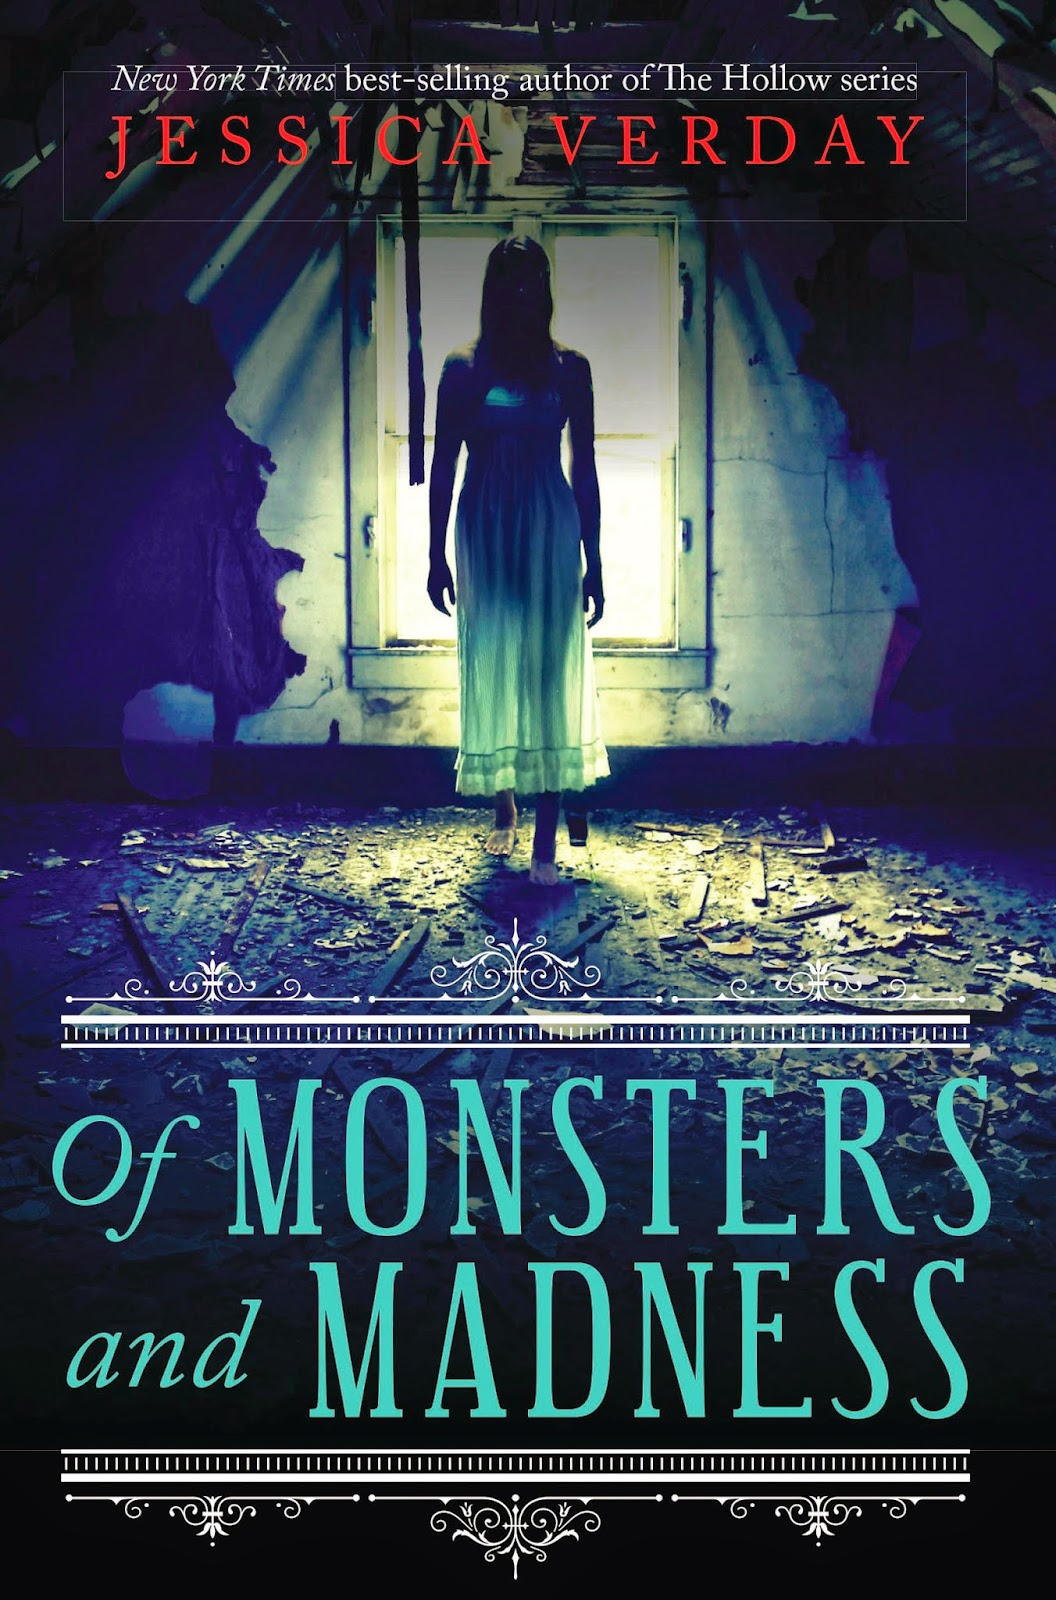 of monsters and madness by jessica verday book cover